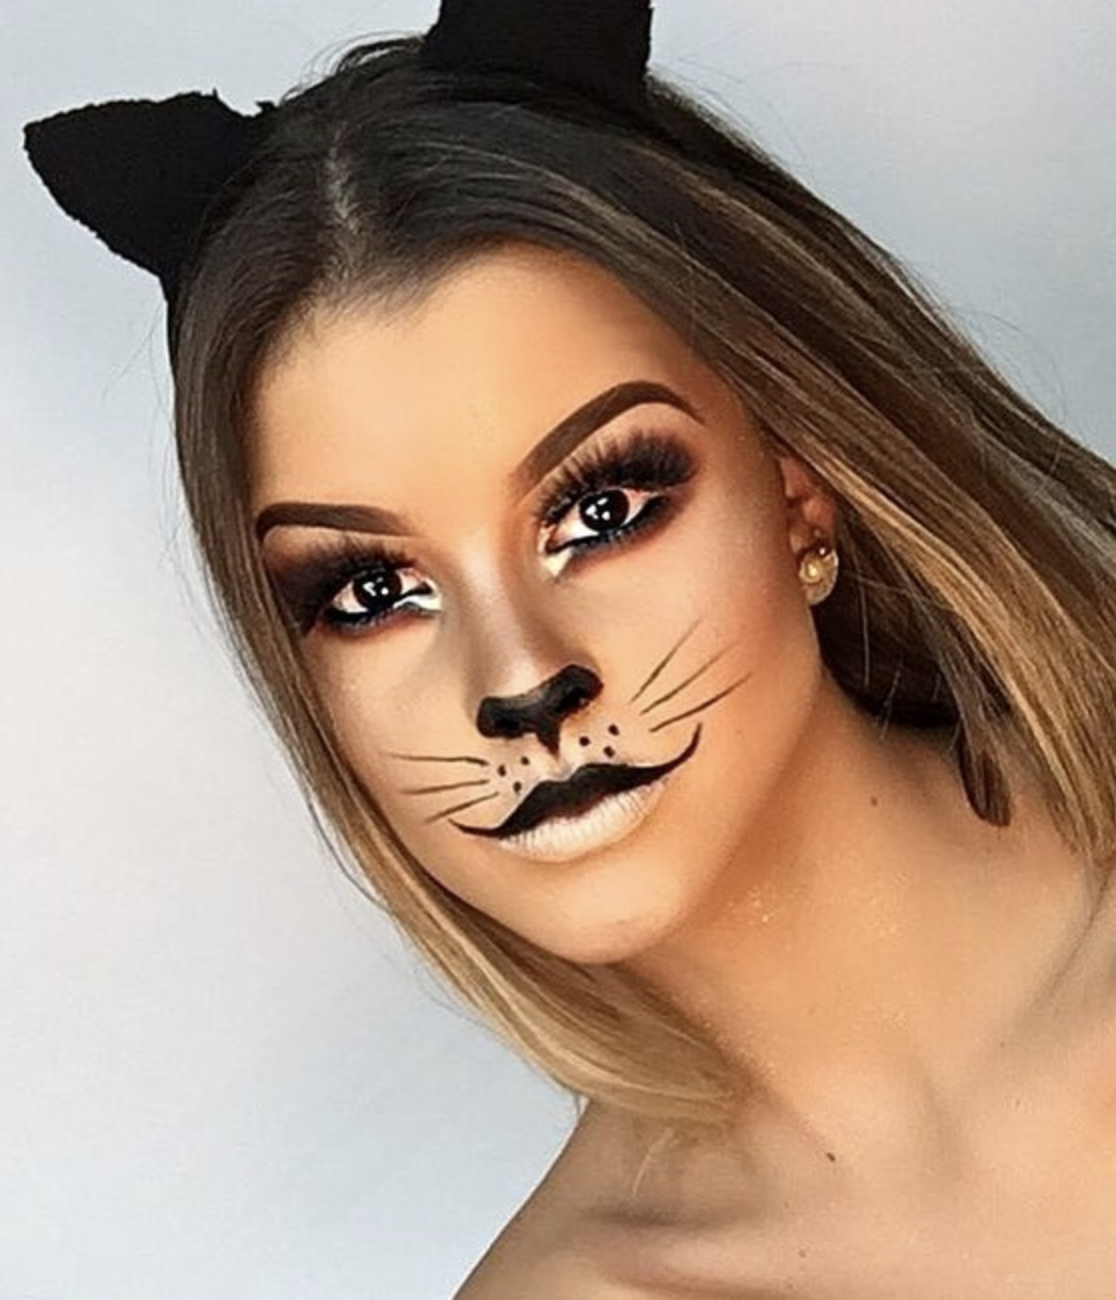 13 Easy Halloween Makeup Ideas to Try – An Unblurred Lady